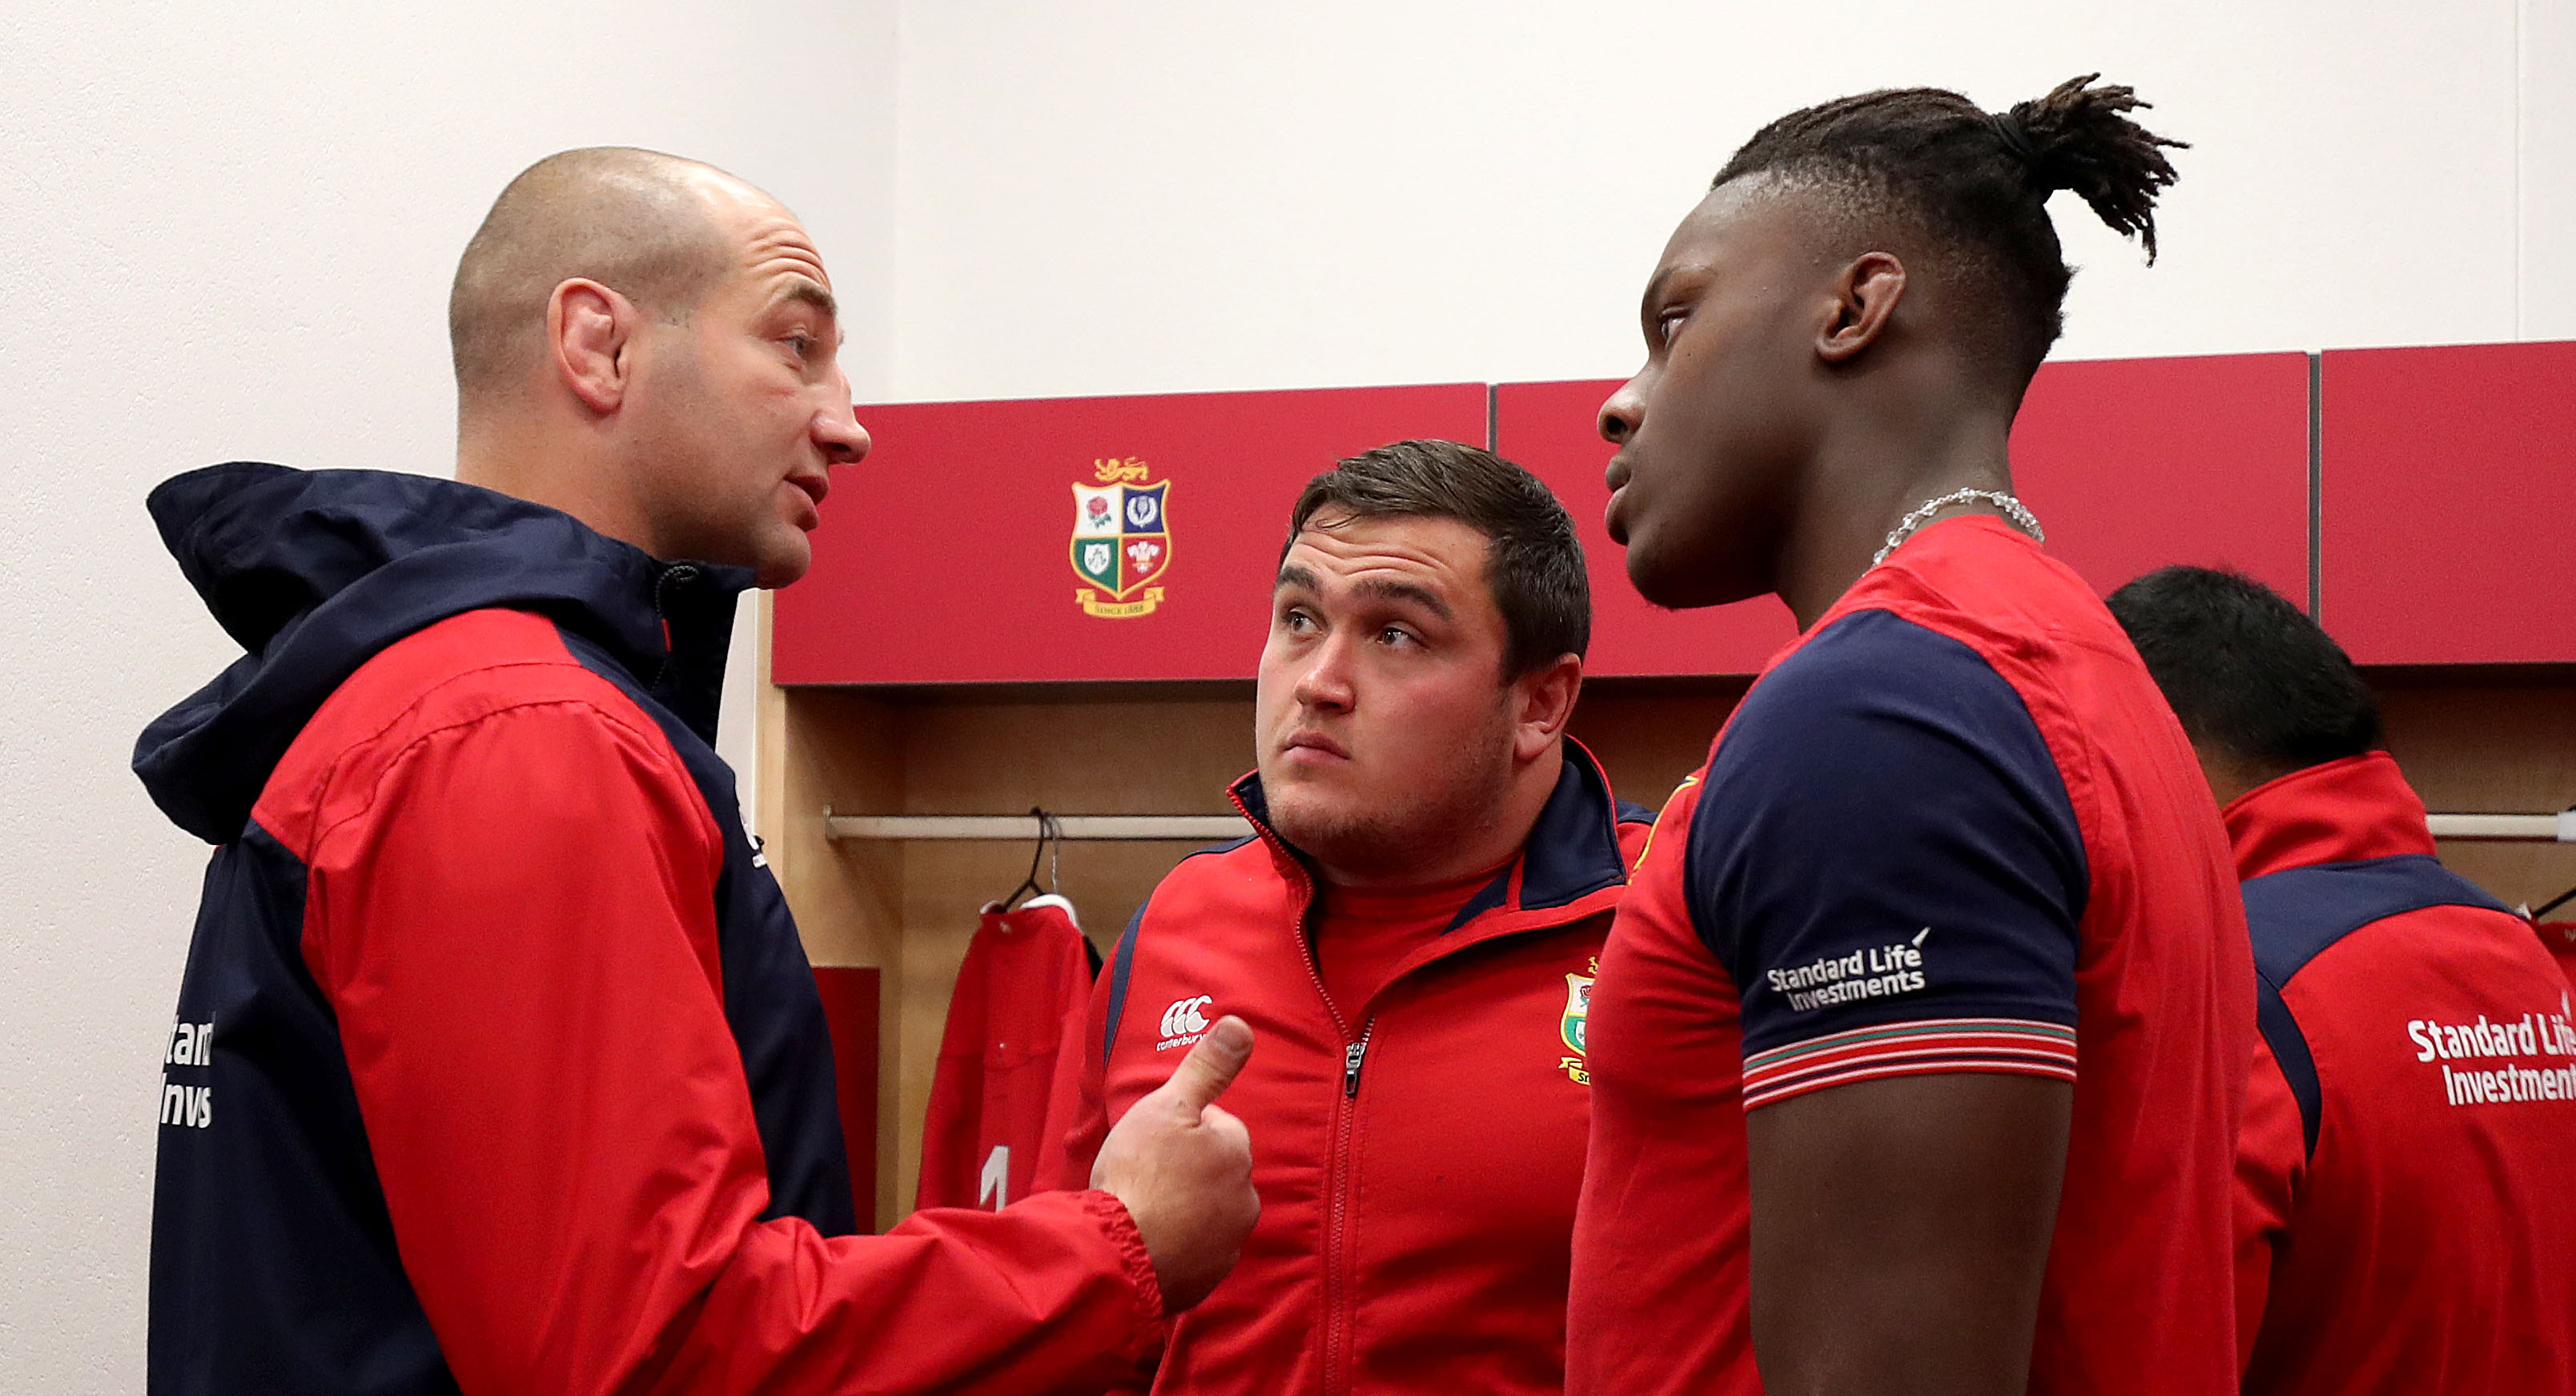 England aim to capitalise on Lions experience